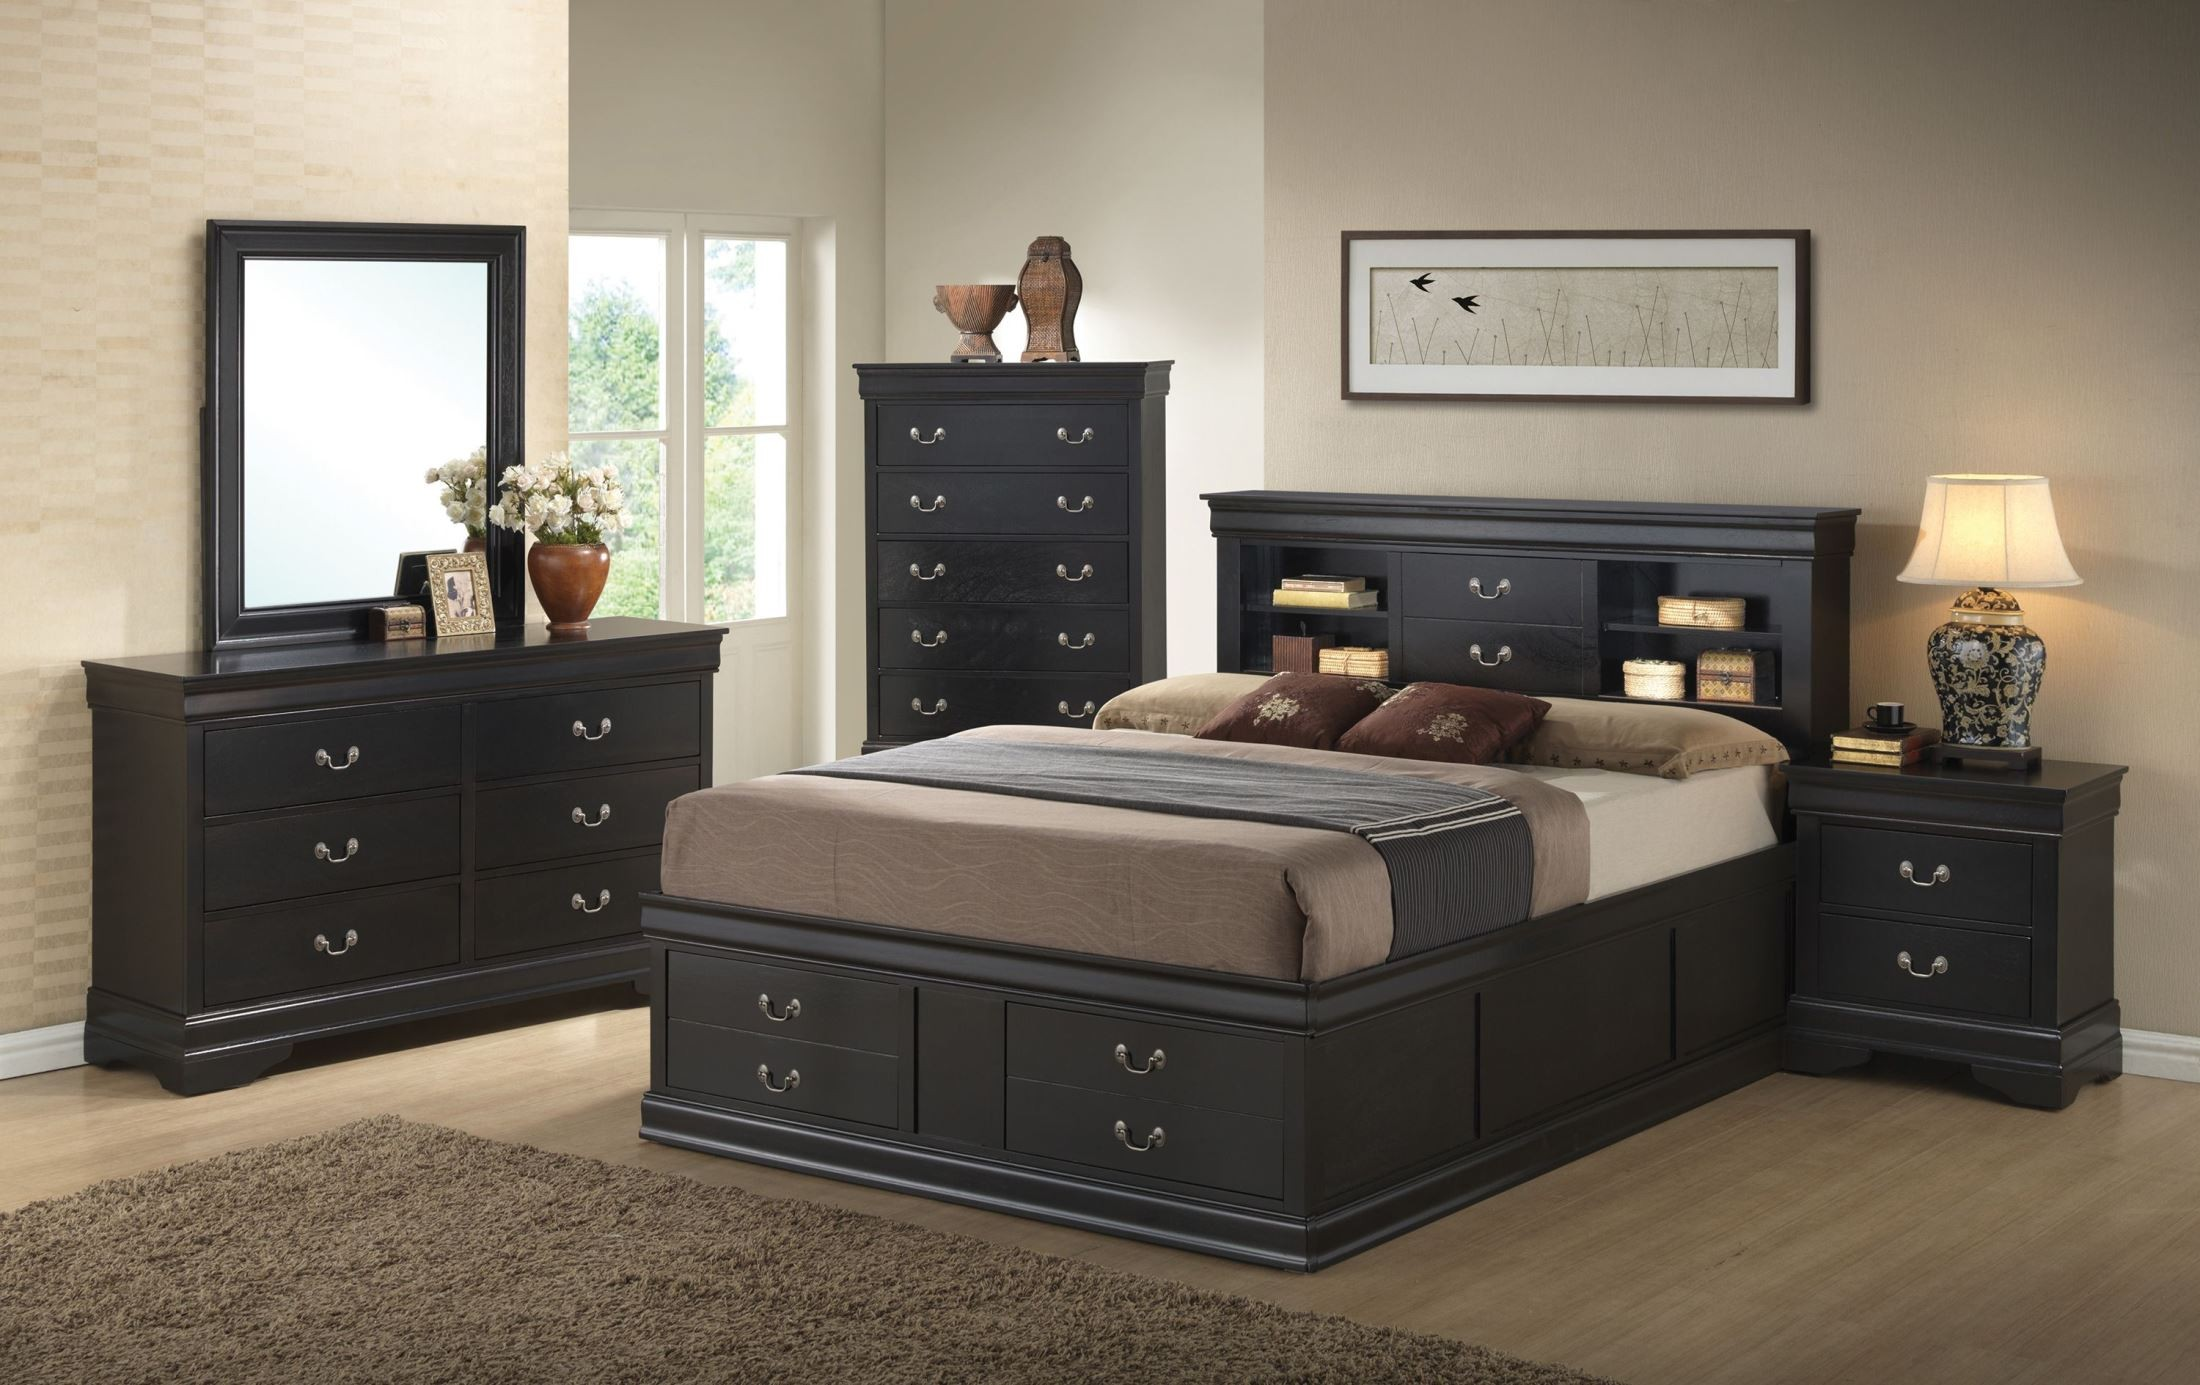 Louis Philippe Black King Storage Bed From Coaster